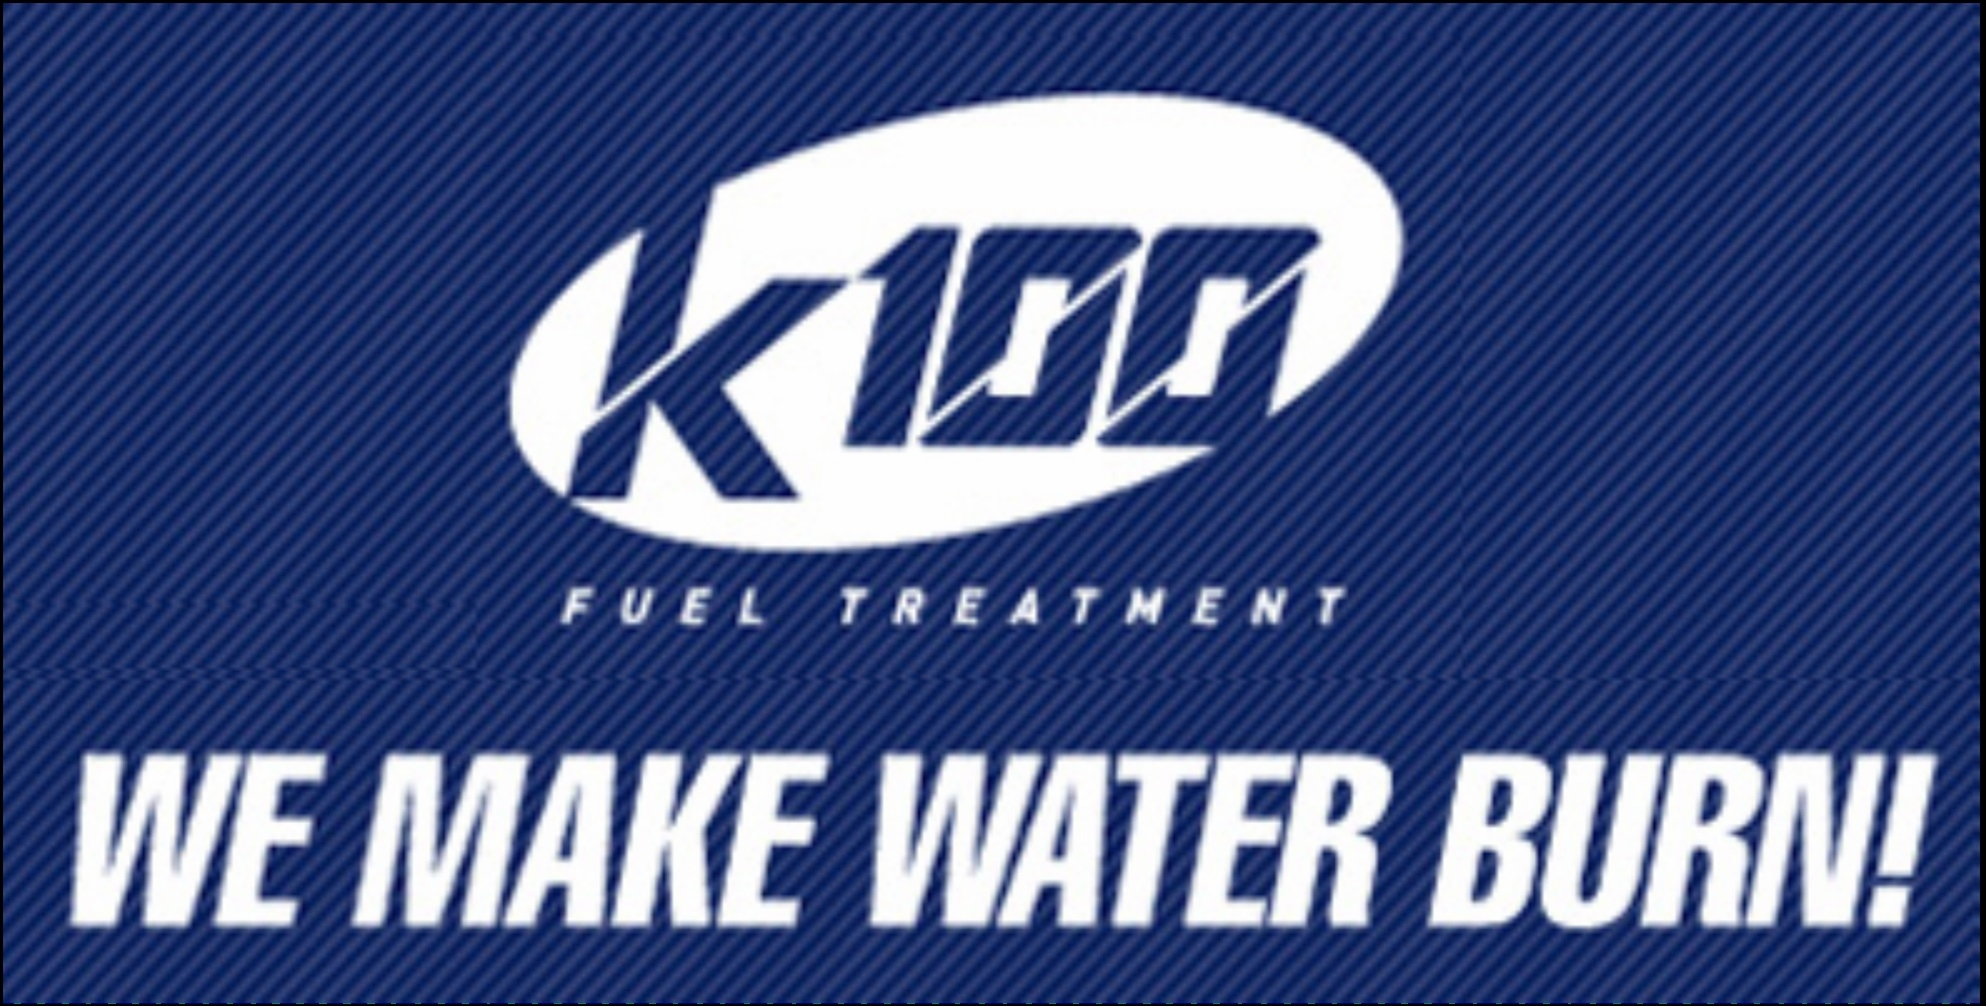 K100-D Diesel Fuel Treatment